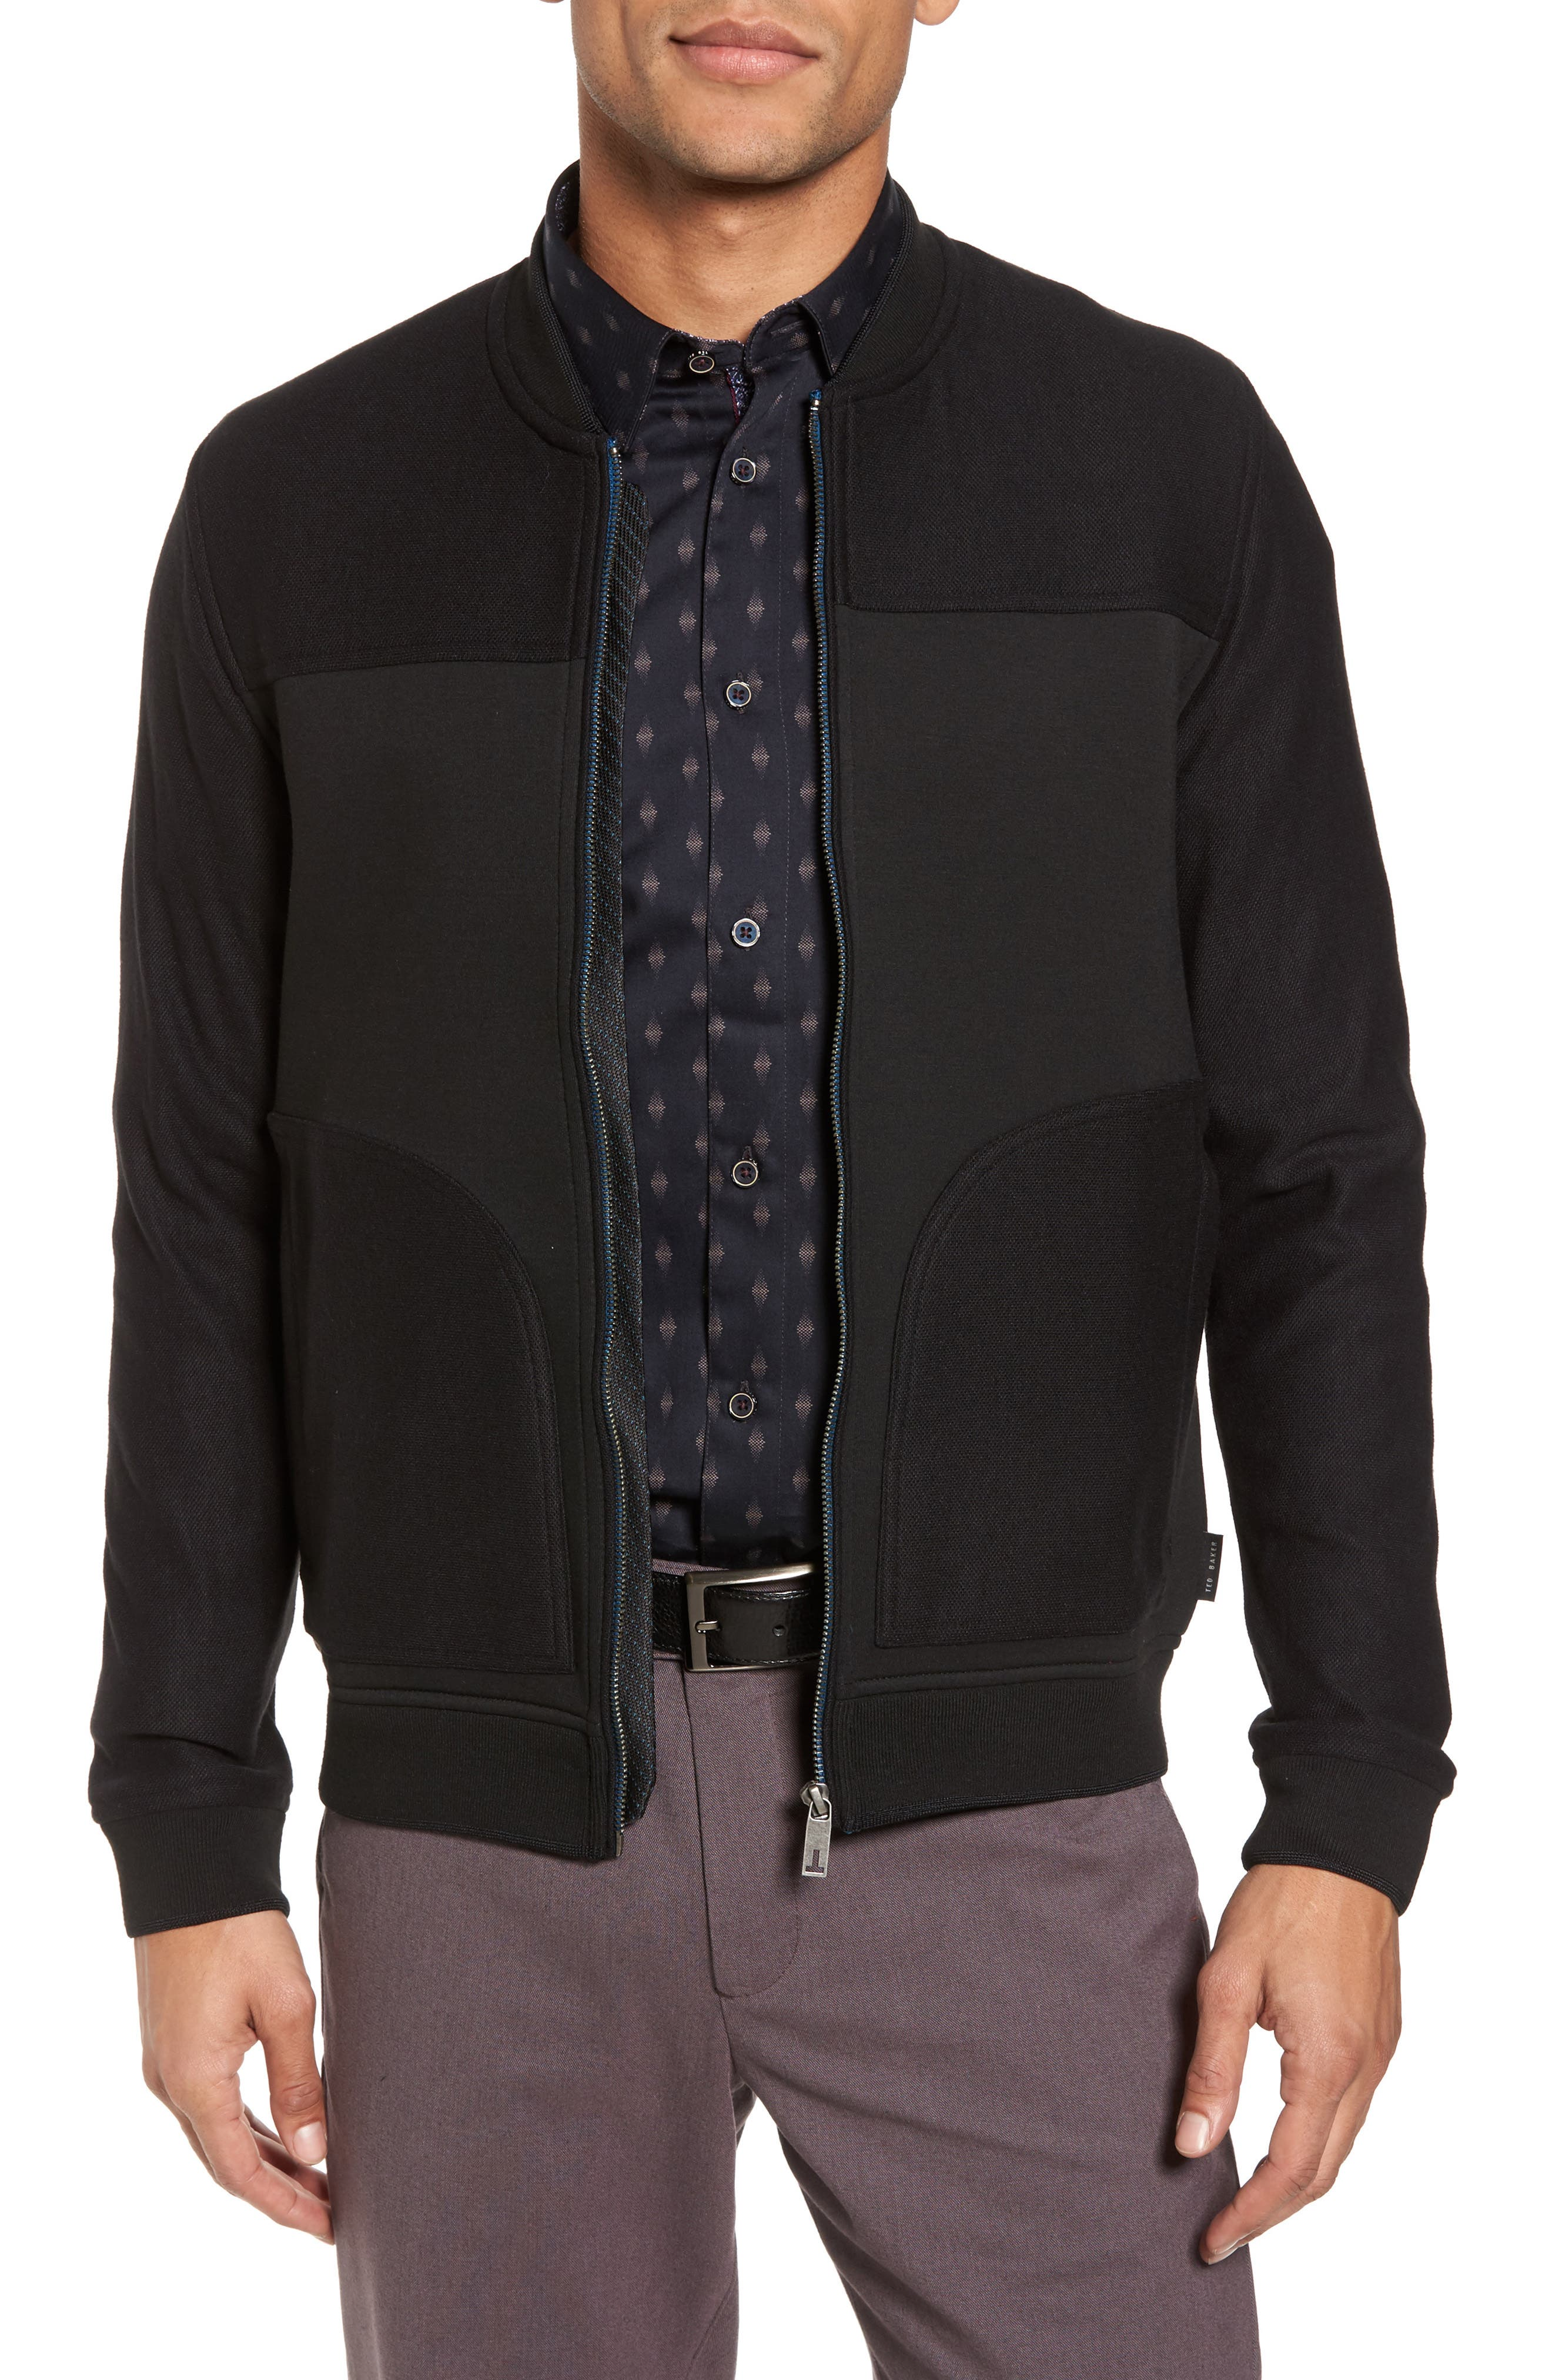 Outme Trim Textured Bomber,                             Main thumbnail 1, color,                             Black